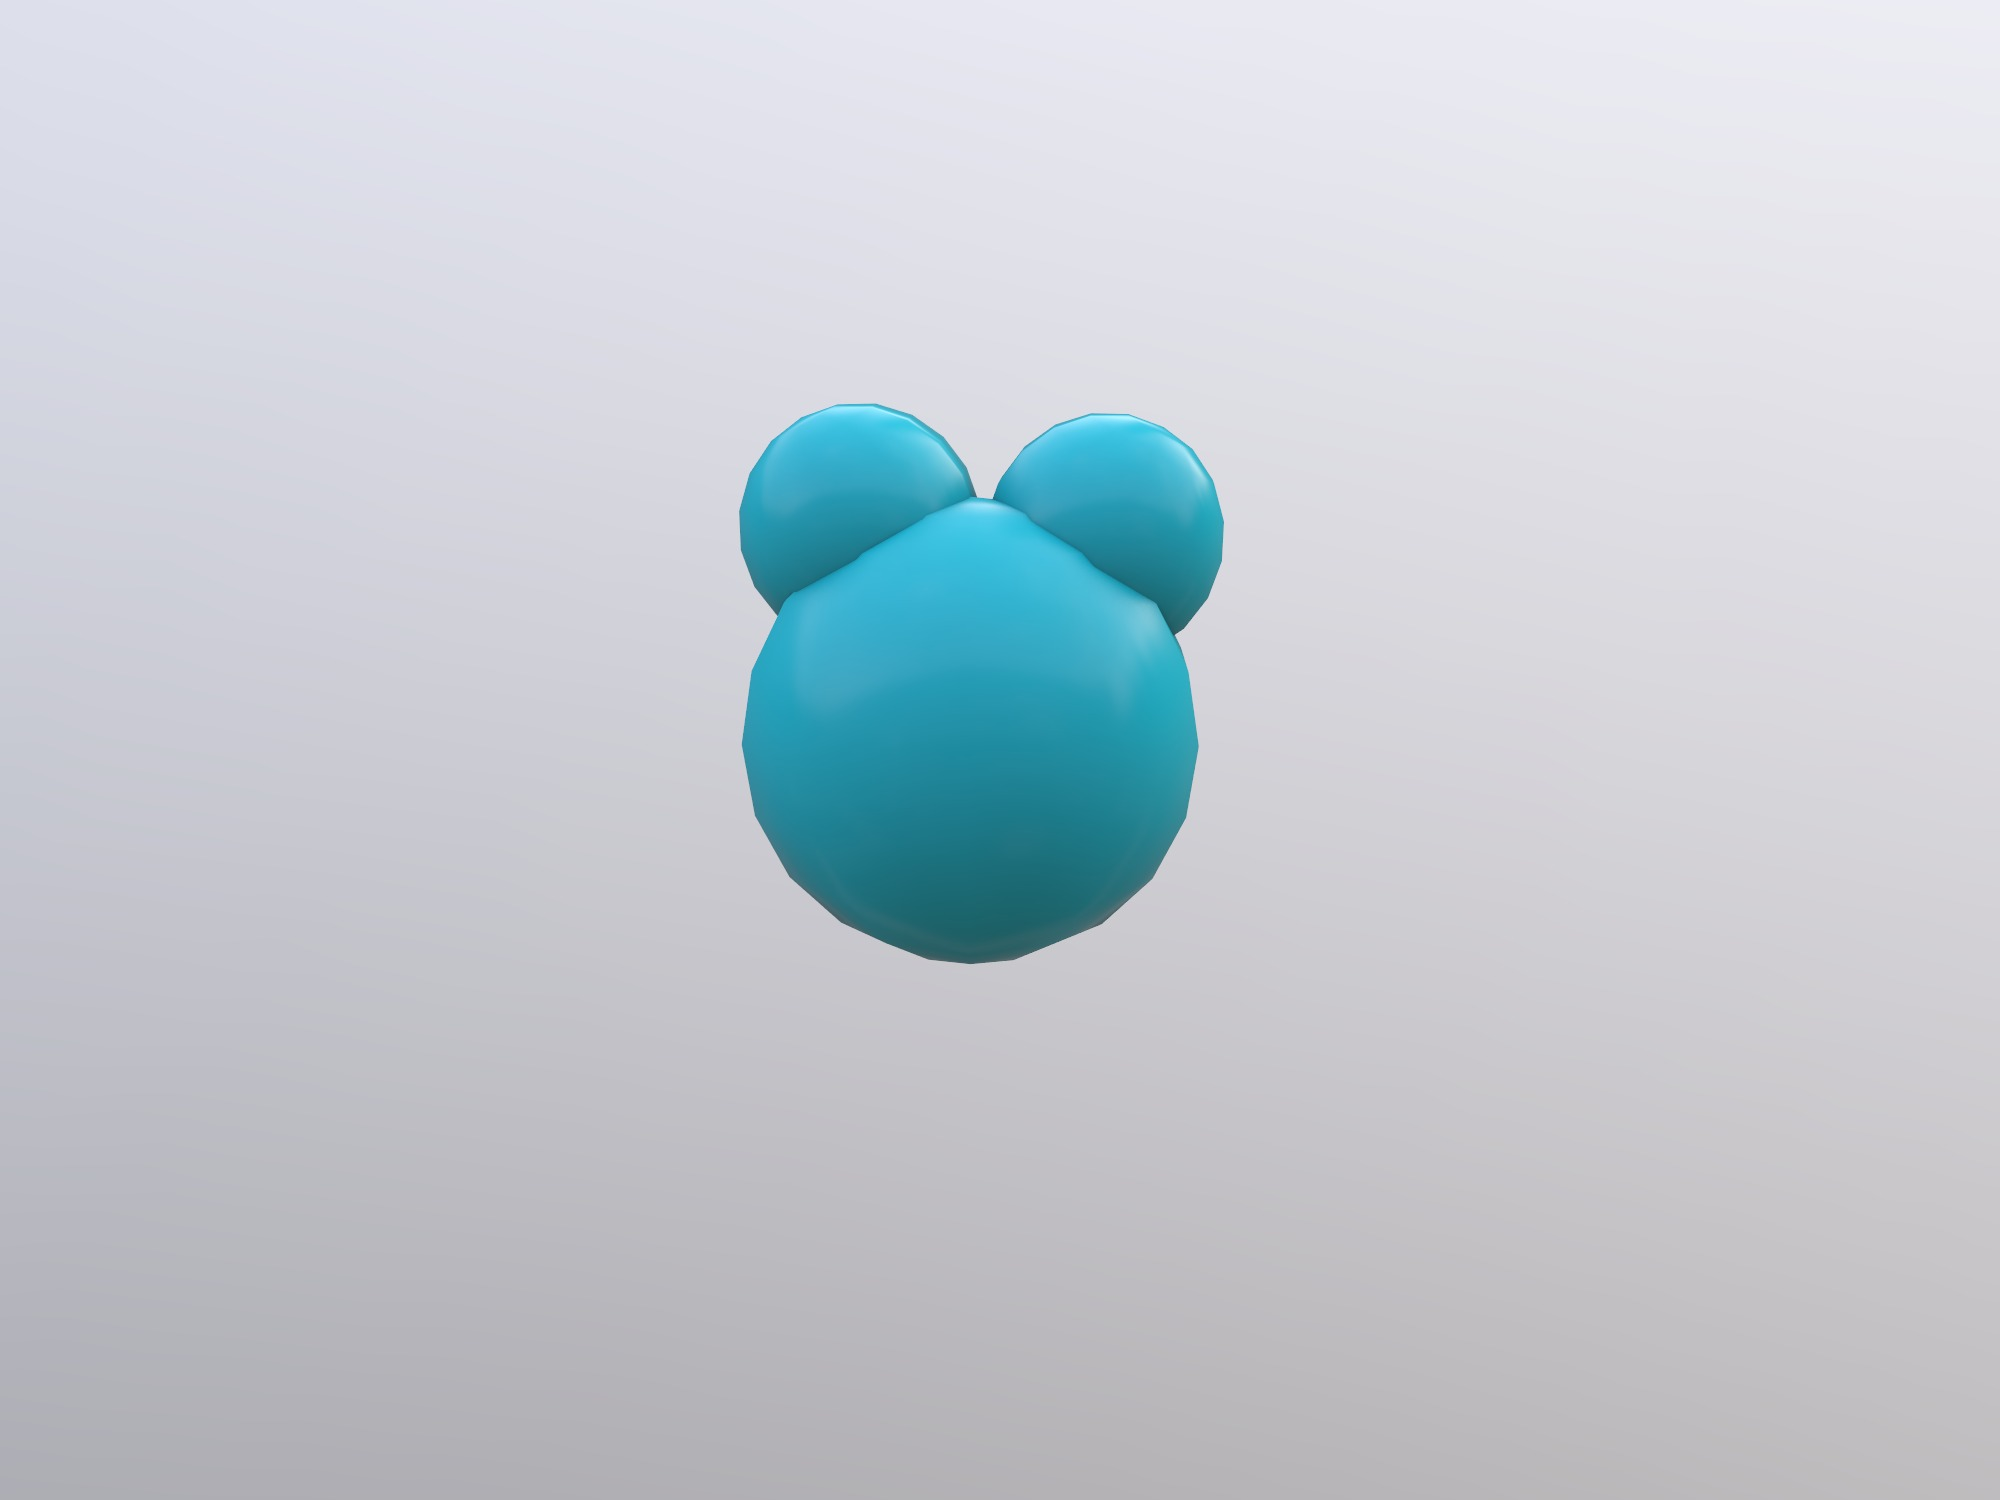 Water Molecule (copy) - 3D design by 970088253 on Jan 17, 2019